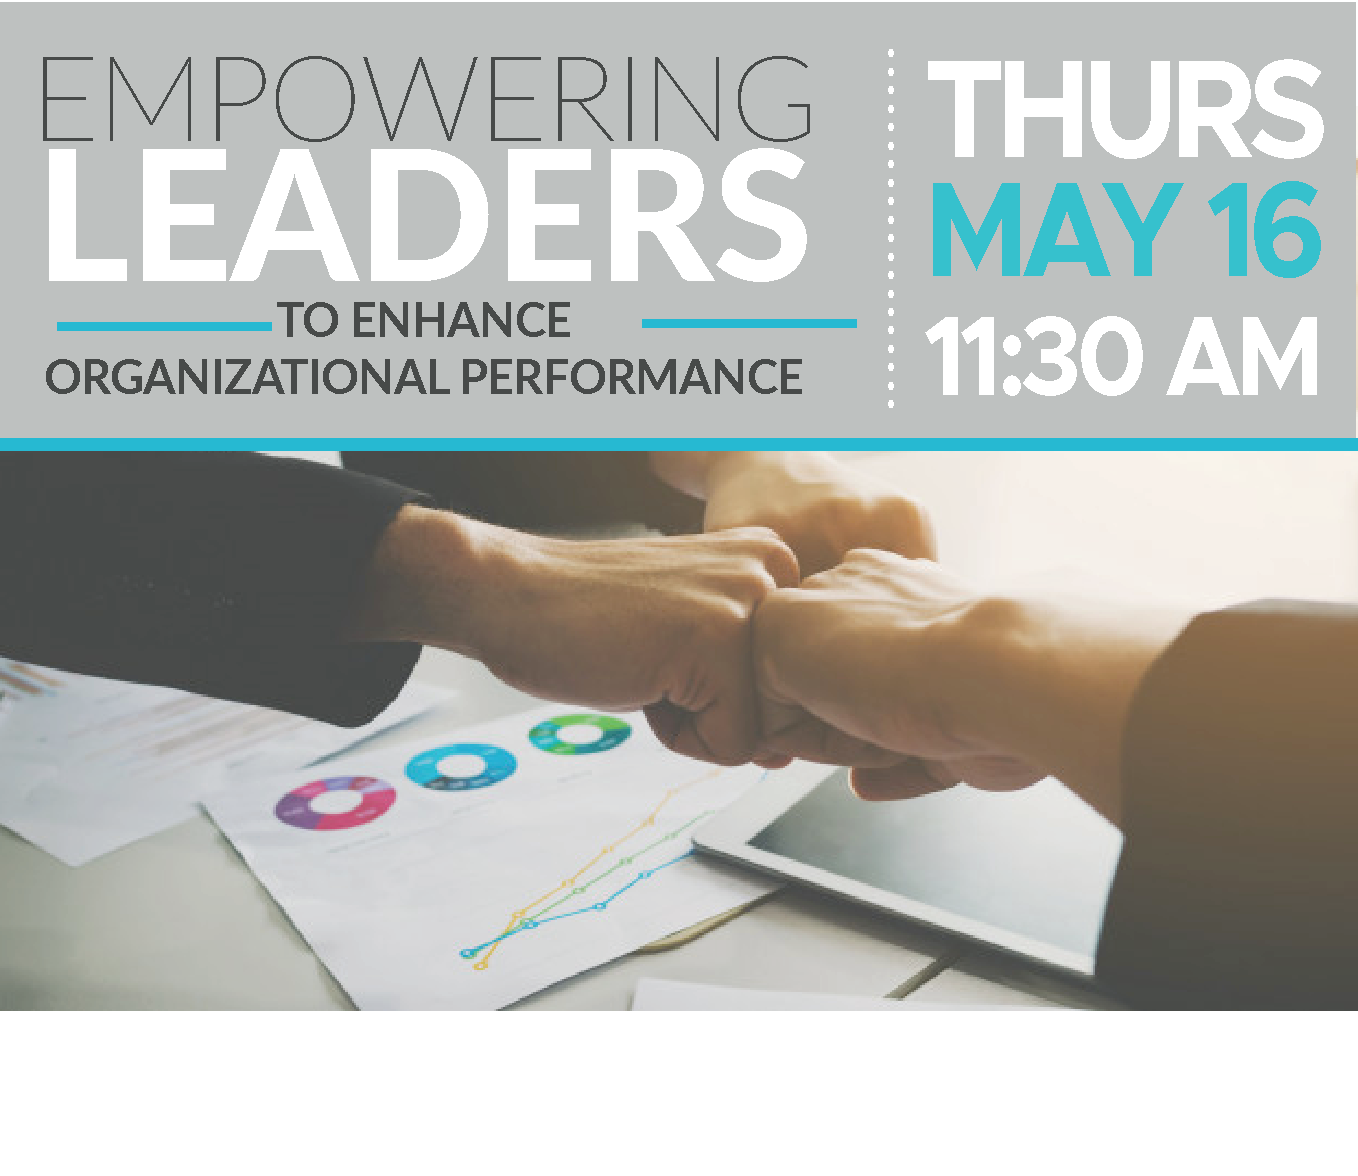 HR Luncheon | Empowering Leaders to Enhance Organizational Performance